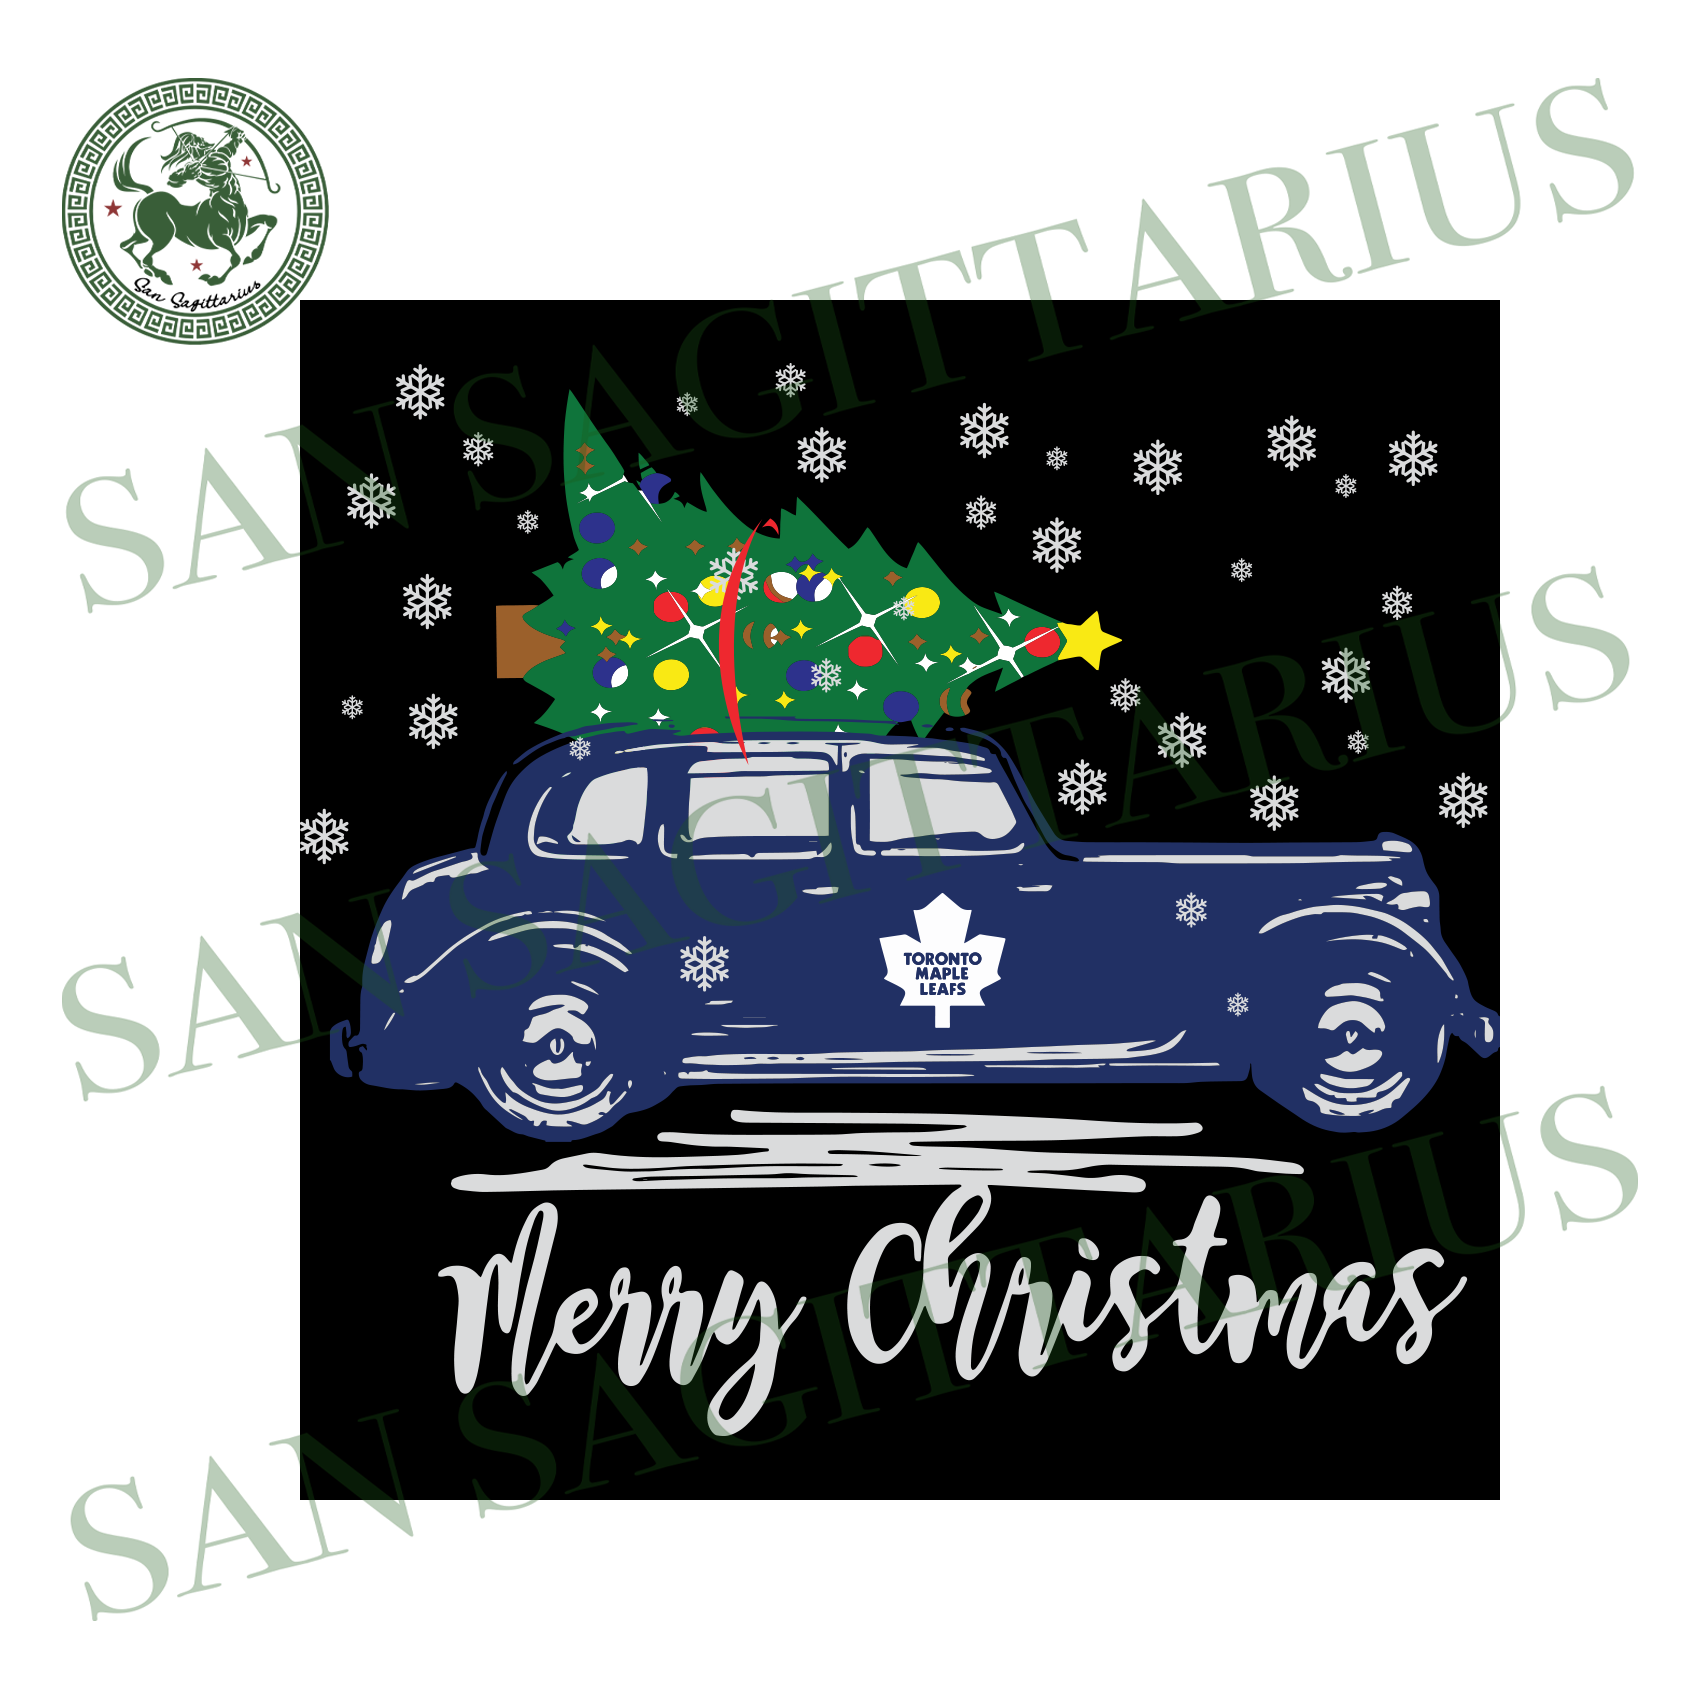 Christmas With Toronto Maple Leafs, Sport Svg, Christmas Svg, Toronto Maple Leafs Svg, NHL Sport Svg, Toronto Maple Leafs NHL Svg, Toronto Maple Leafs Shirt, Toronto Maple Leafs NHL Gift, Hoc